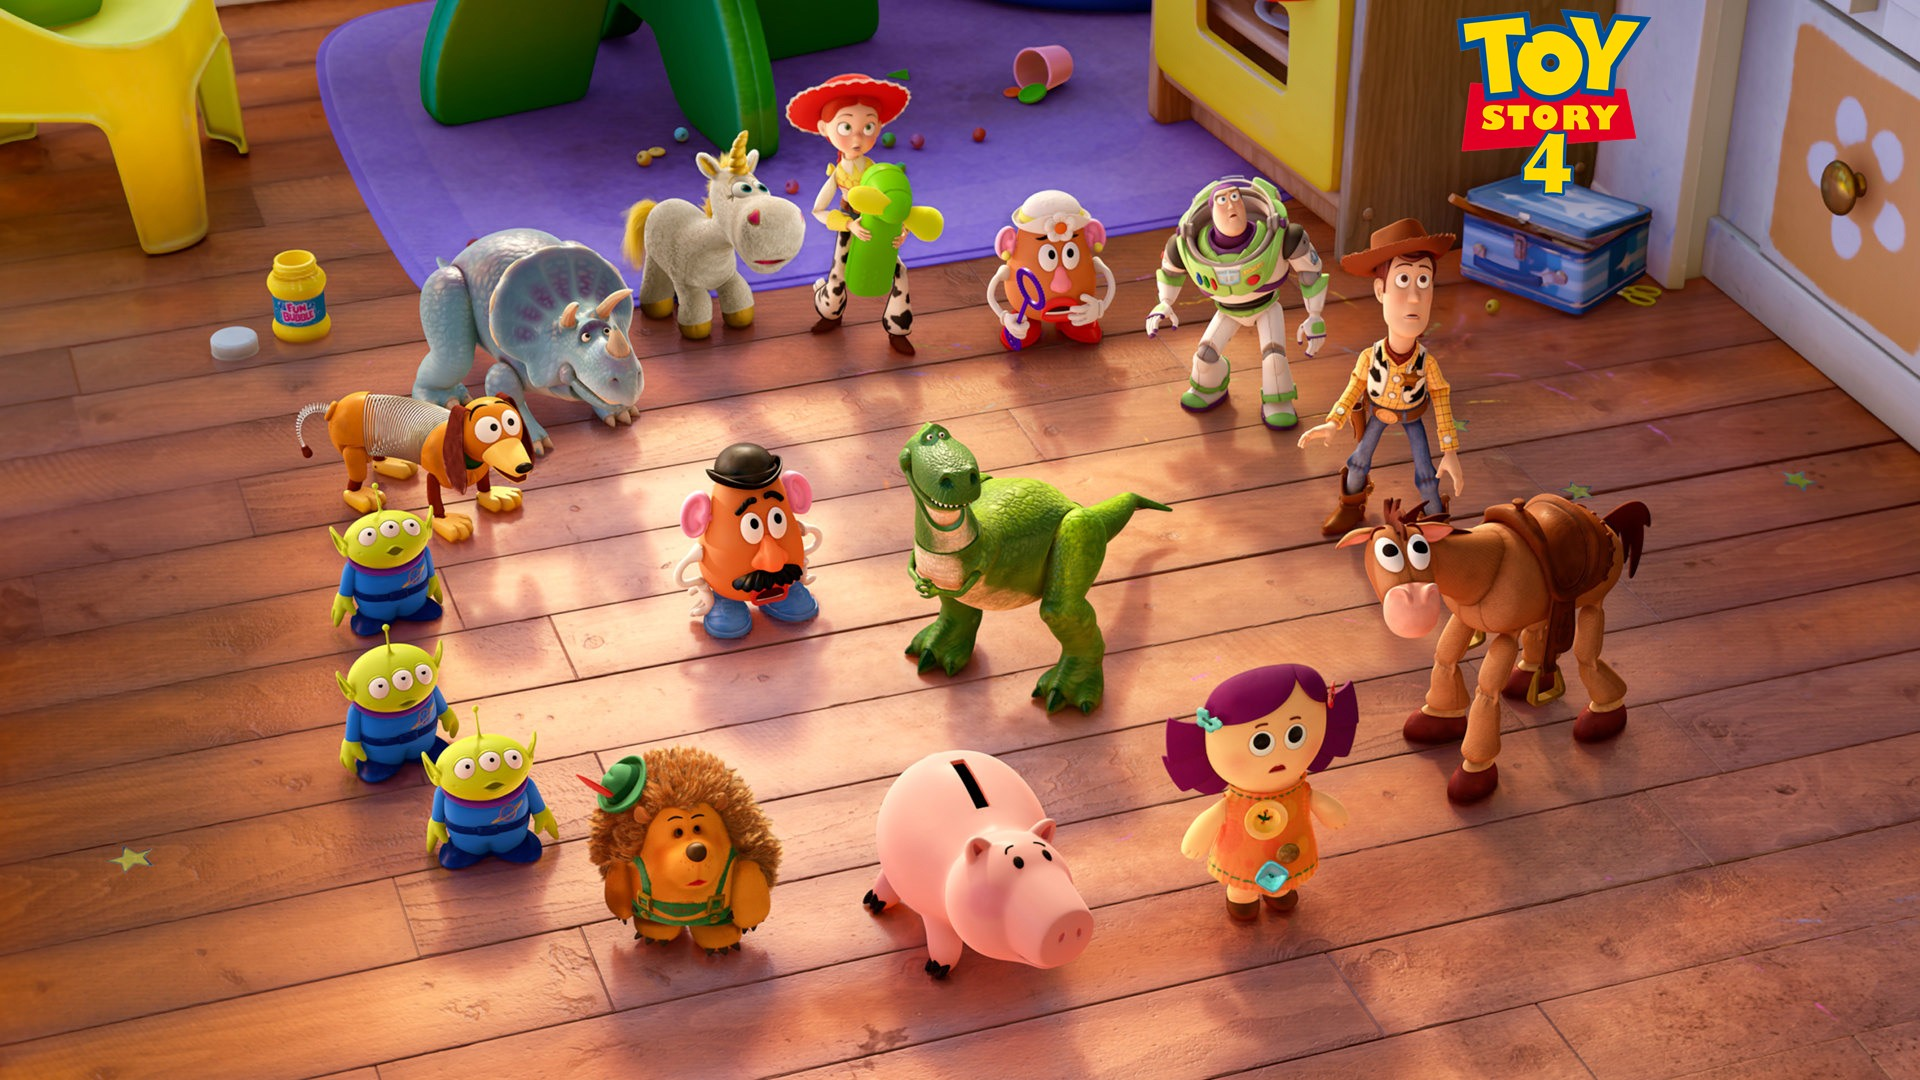 Toy Story 4 Toys : Toy story hd wallpapers free download